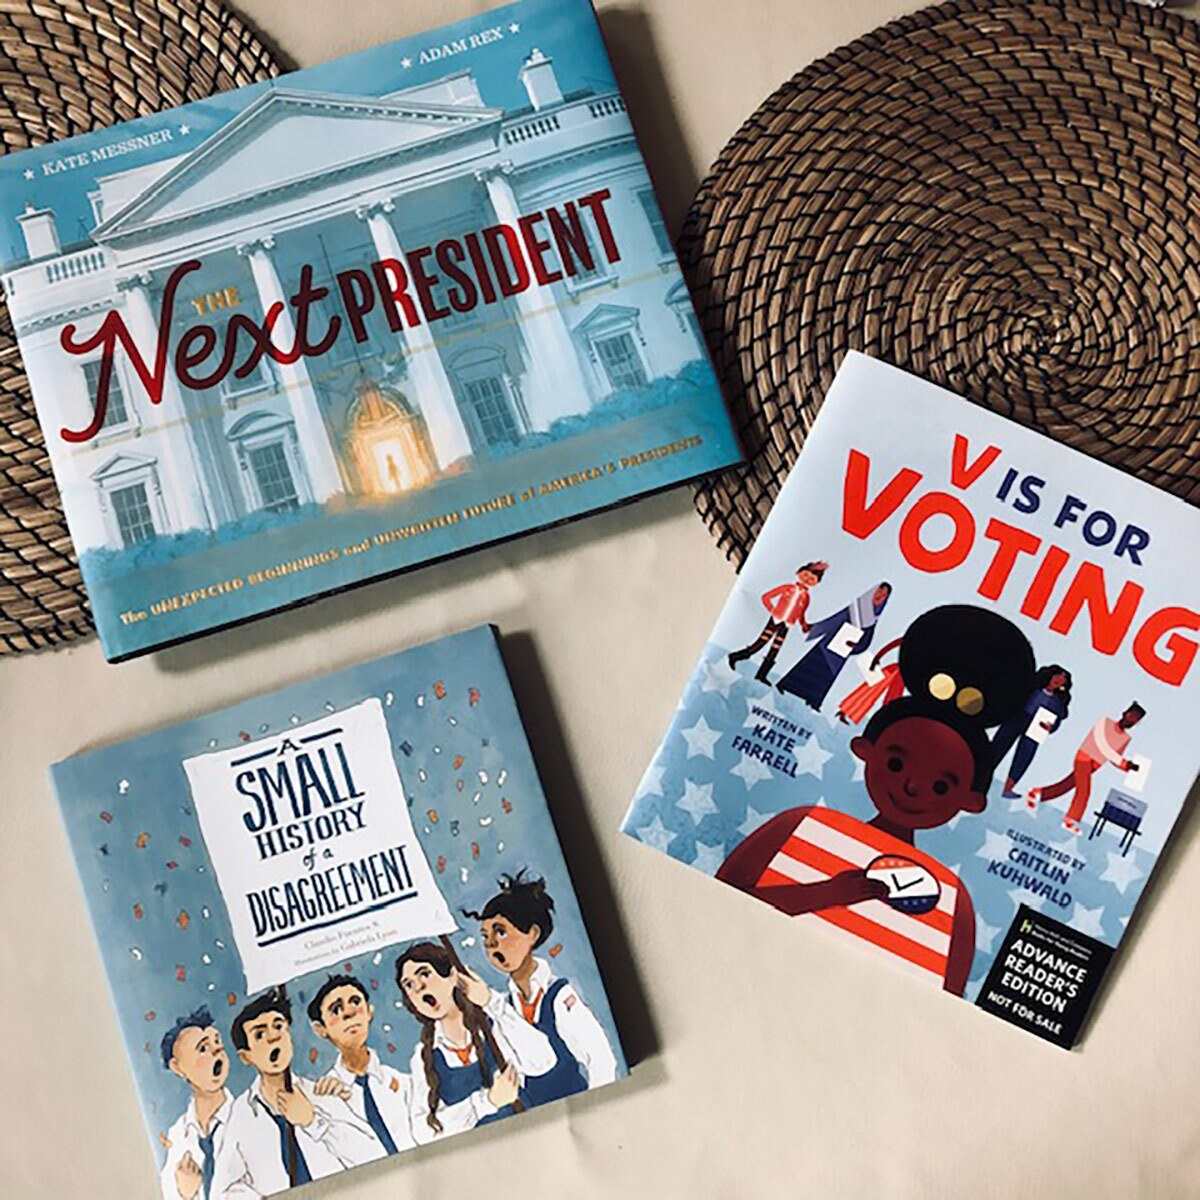 Three blue book covers of kids elections books. One features a cartoon of the White House, another a cartoon of a smiling black girl in a red and white top and the third a cartoon of a group of people talking